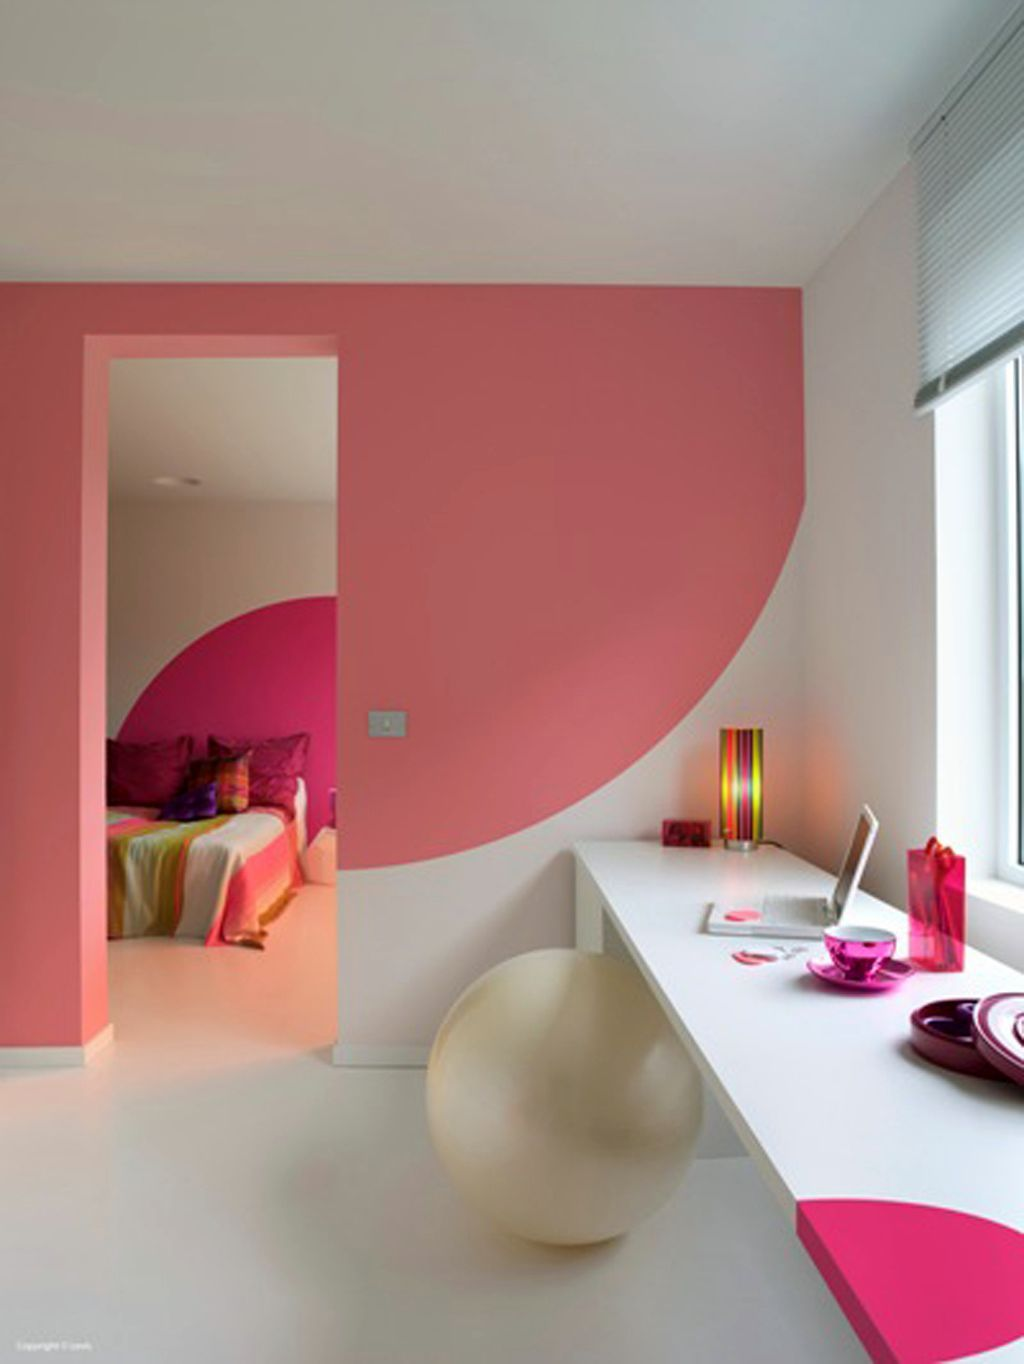 Wall Painting Design Image Cool Bedroom Paint Designs Half Circle Pink Cool Wall